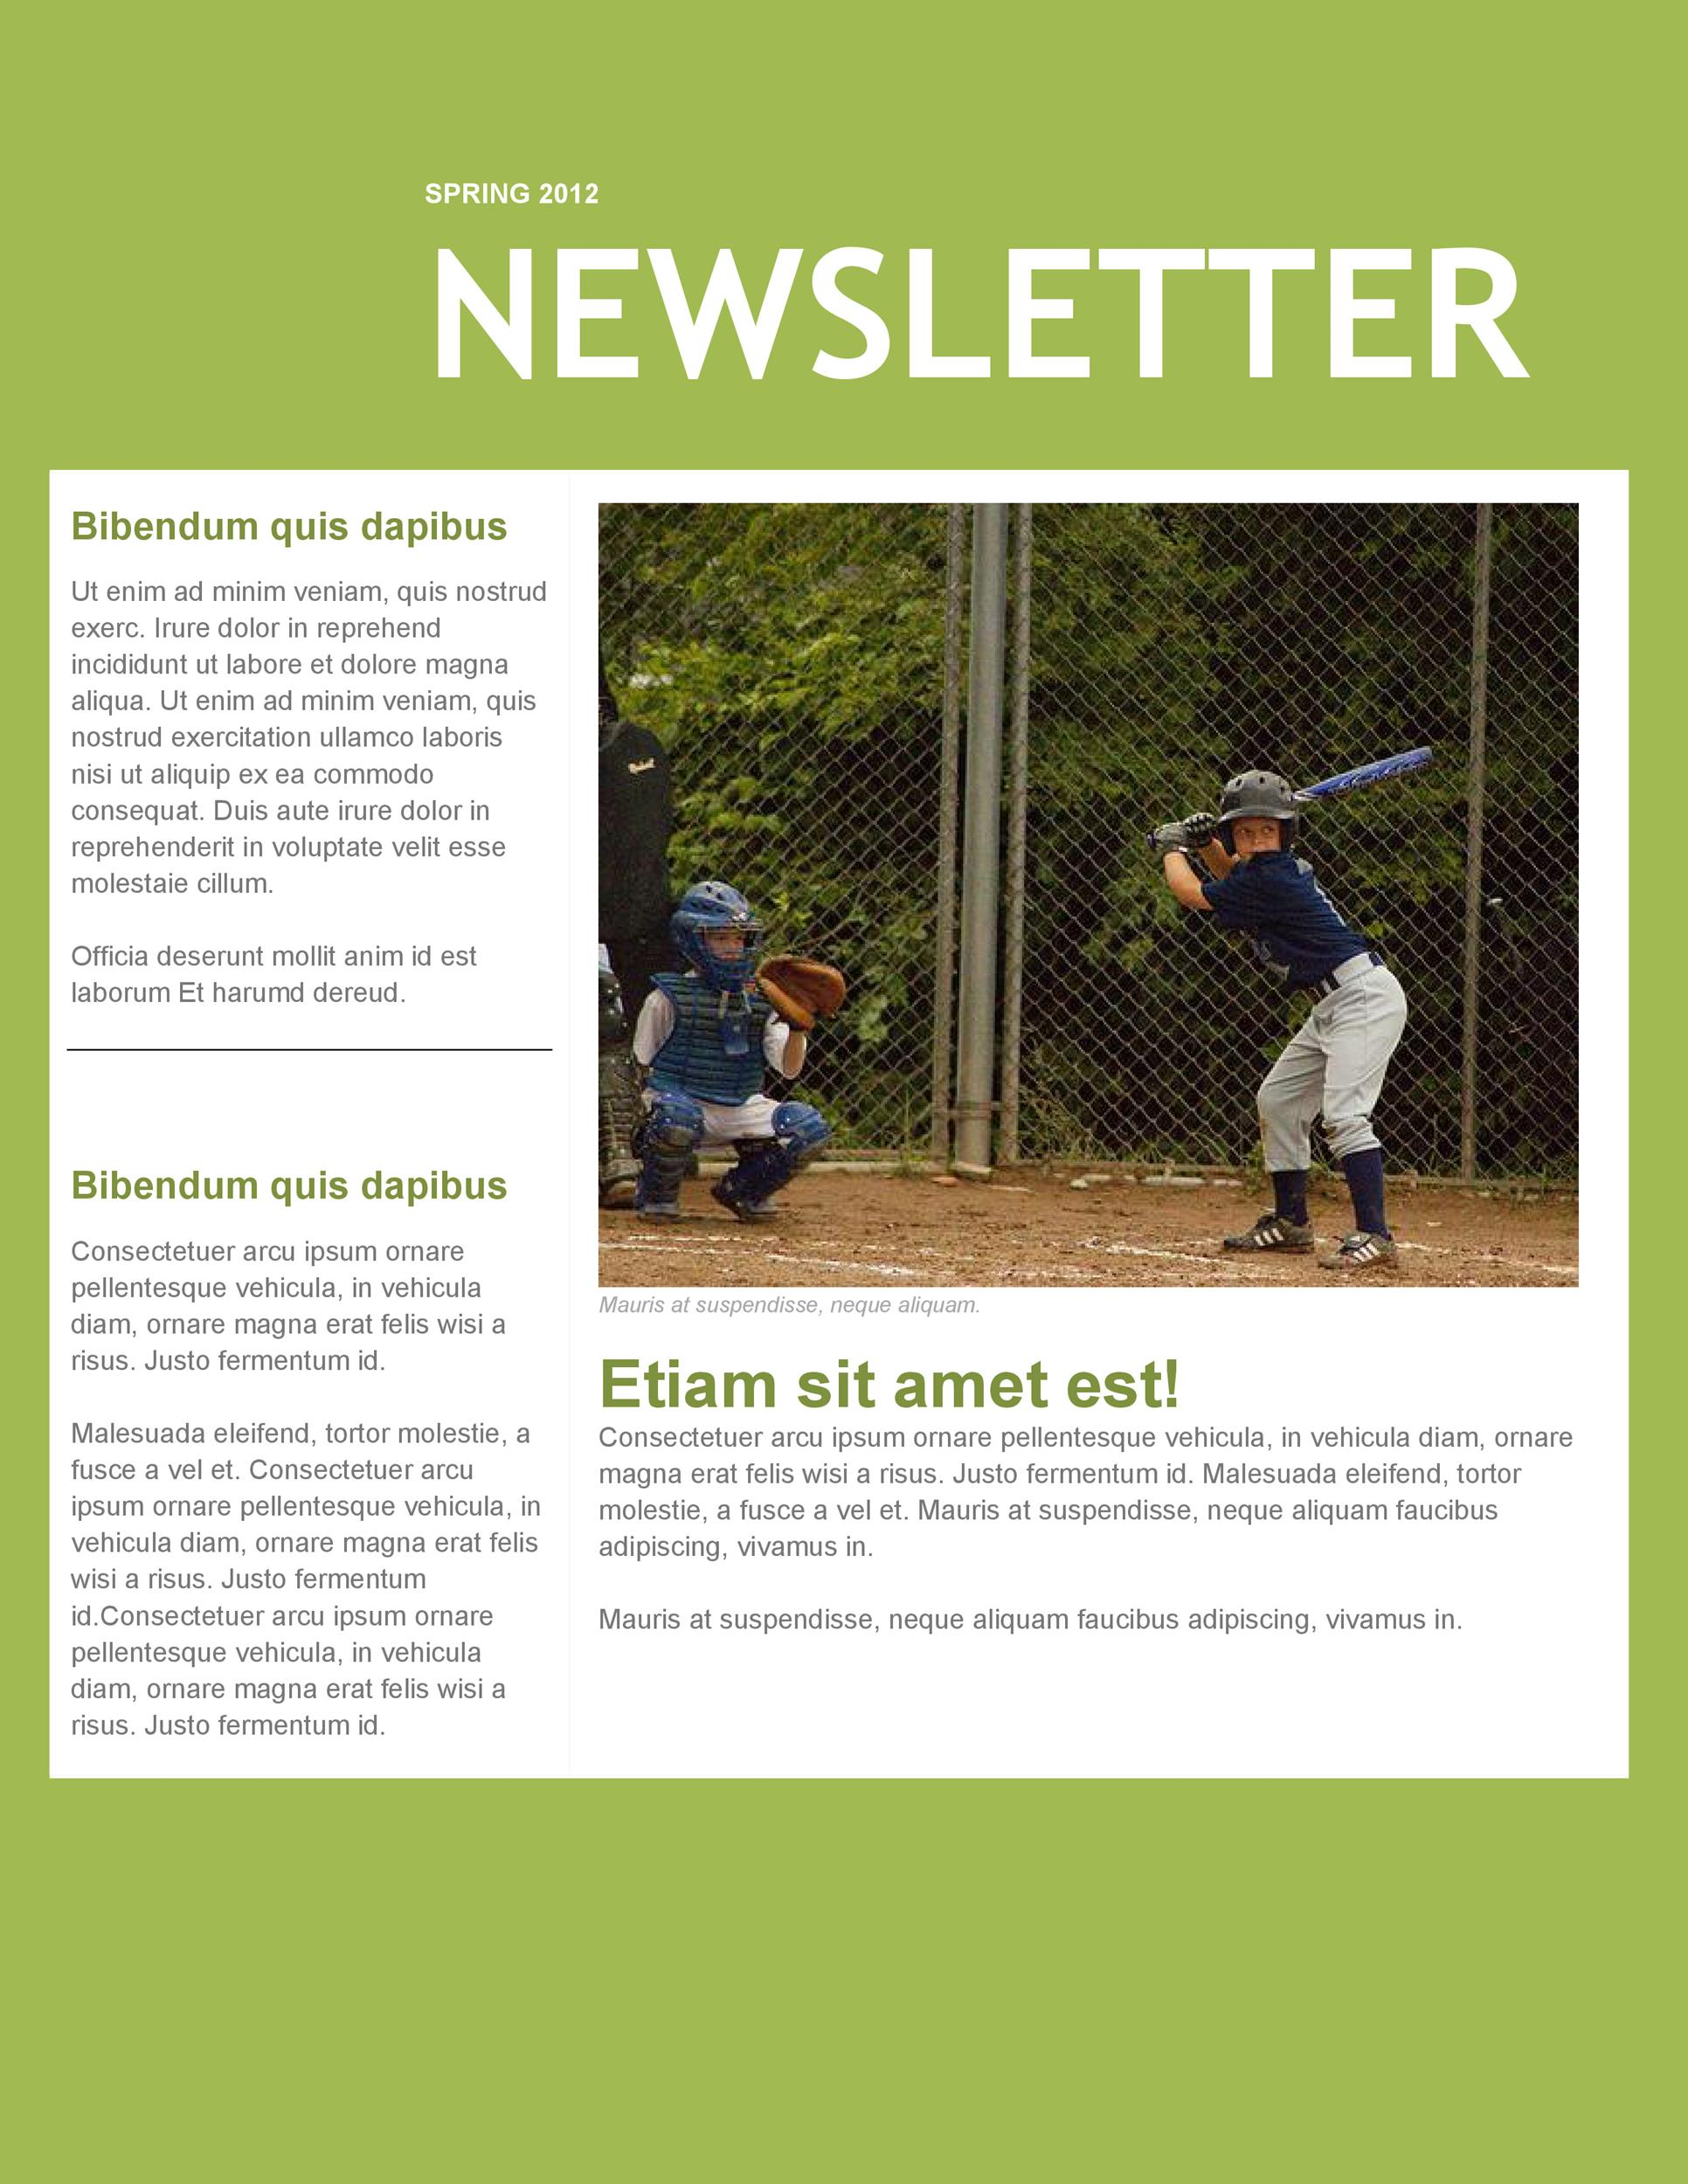 Newsletter Template 14